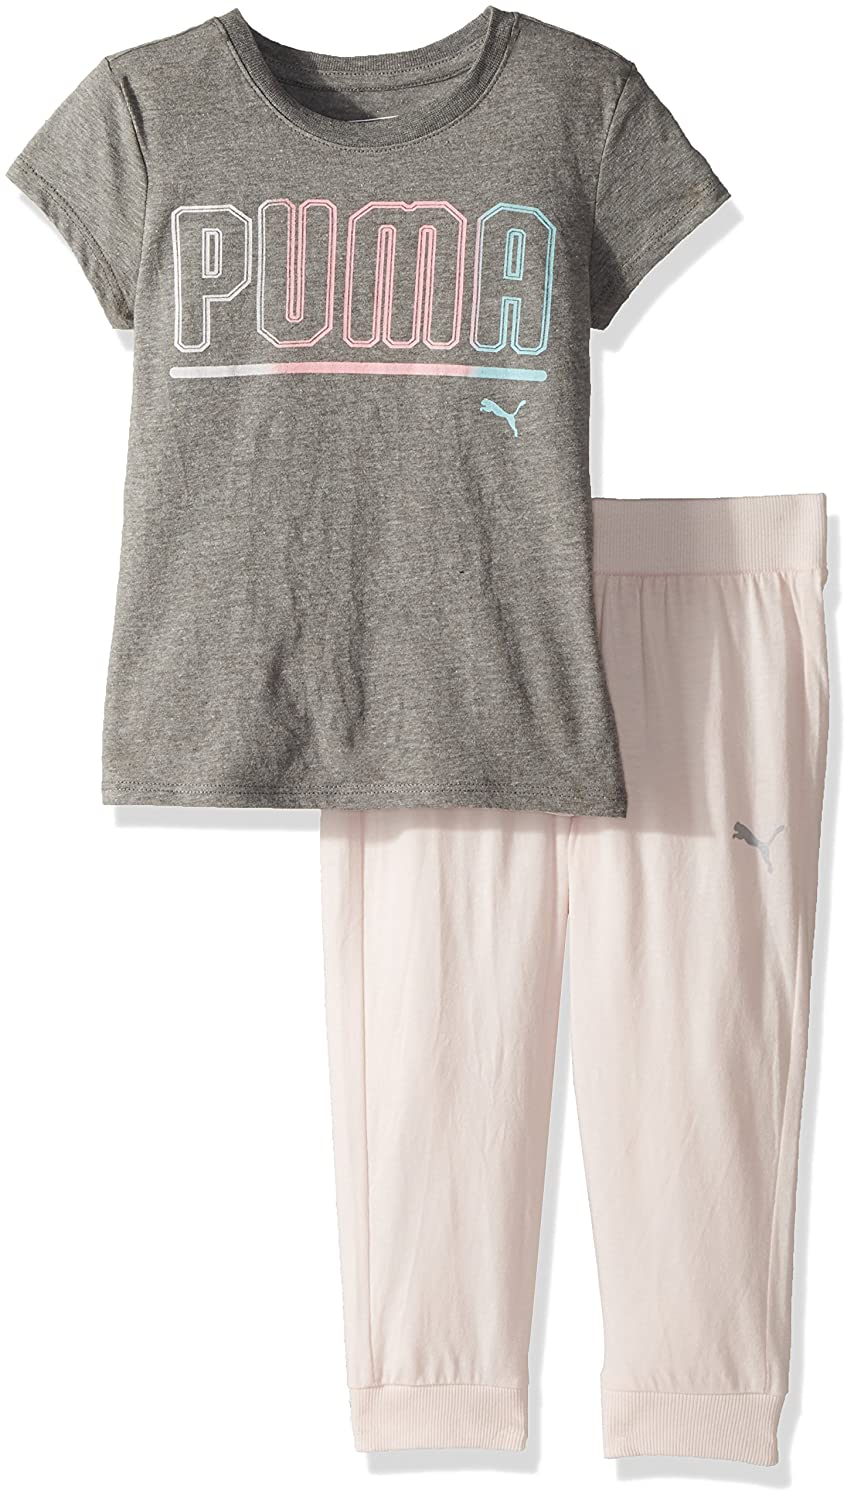 PUMA Girls Girls' 2 Piece Tee & Capri Joggers Set